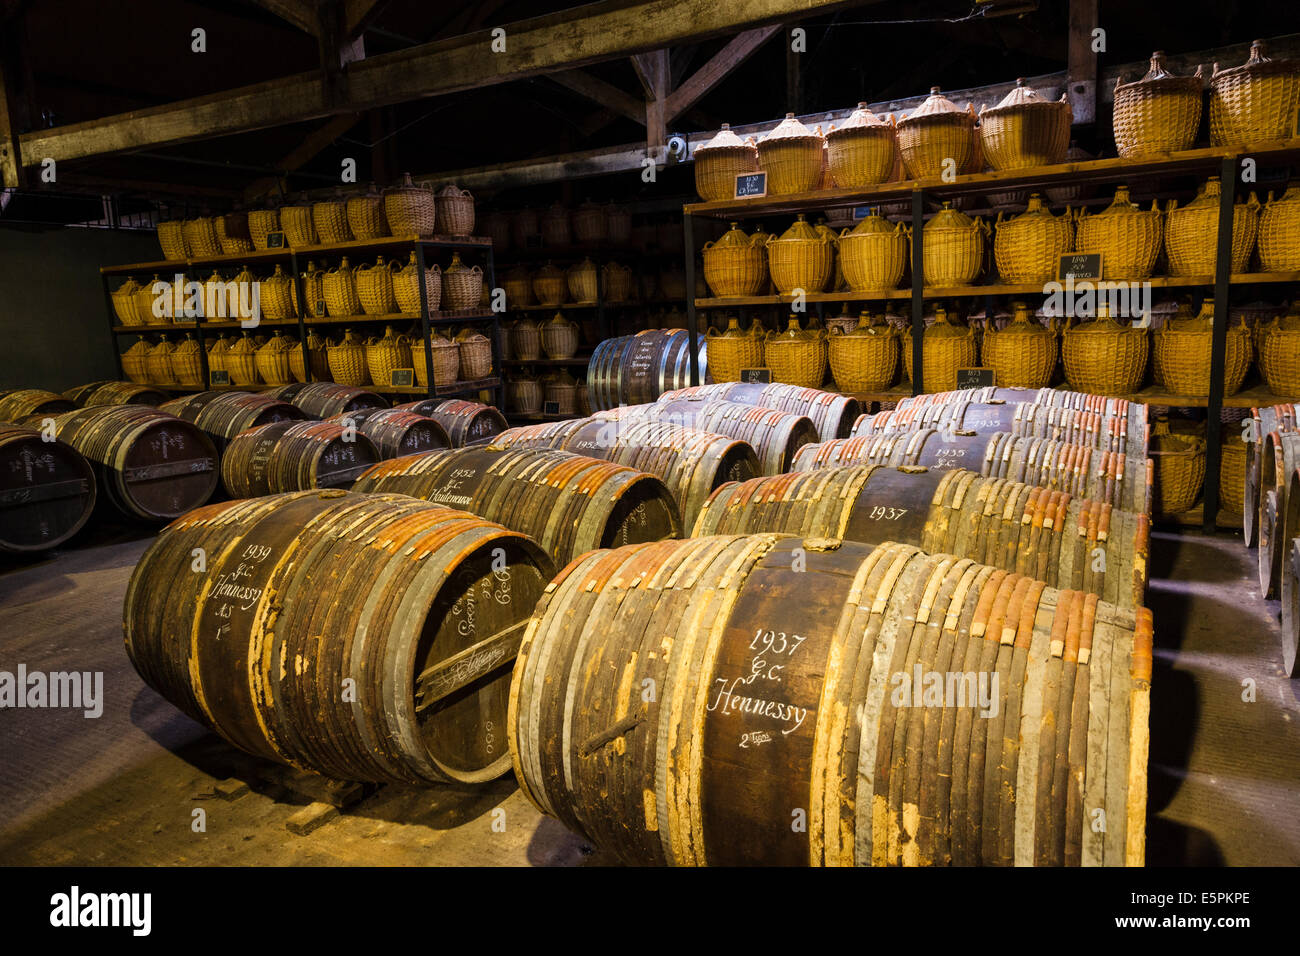 Hennessy ageing warehouse where the eaux-de-vie is stored in oak barrels to mature before blending. - Stock Image